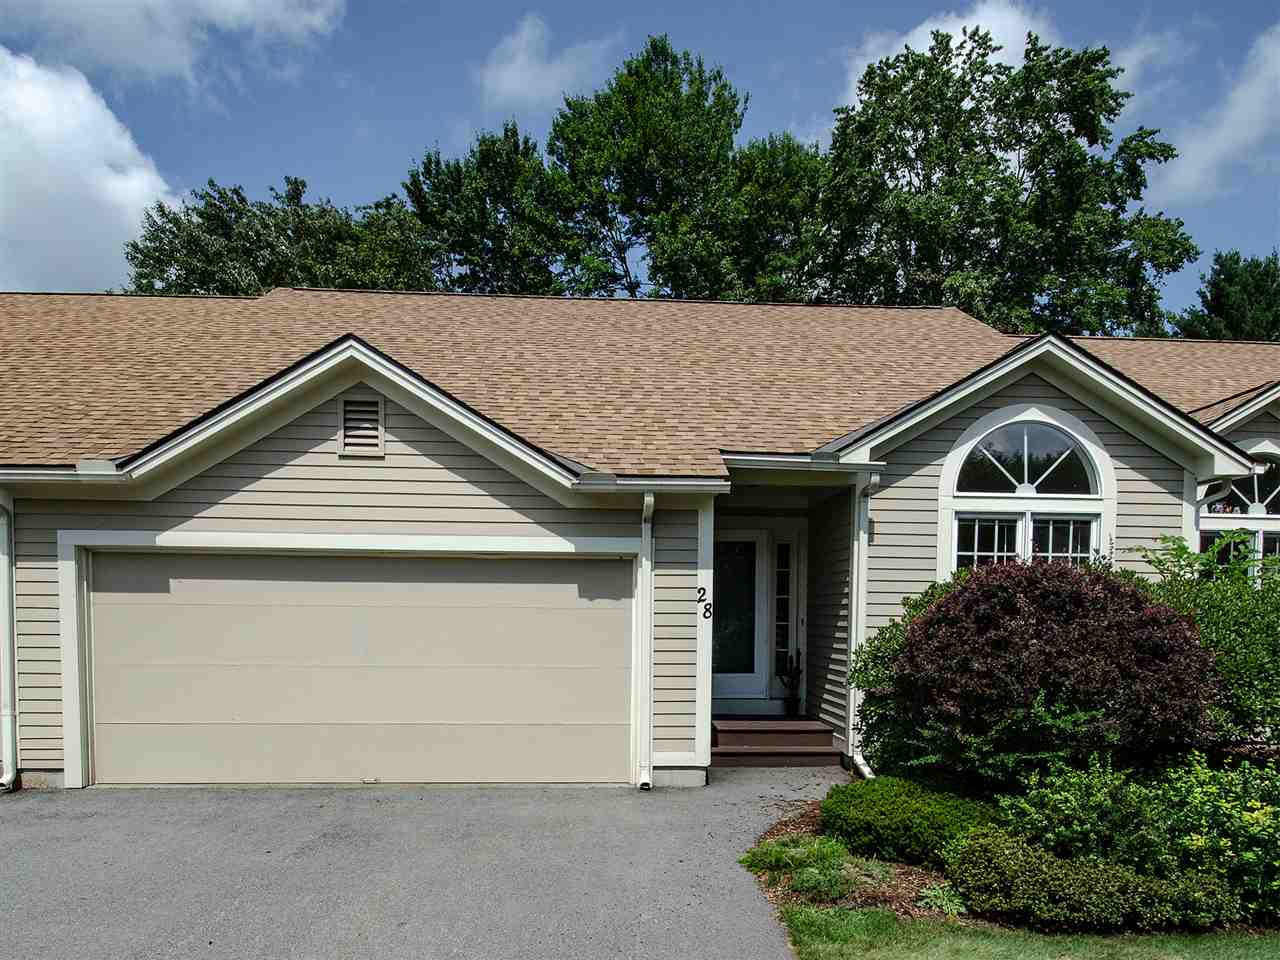 MLS 4720835: 28 Skyline Drive, Keene NH